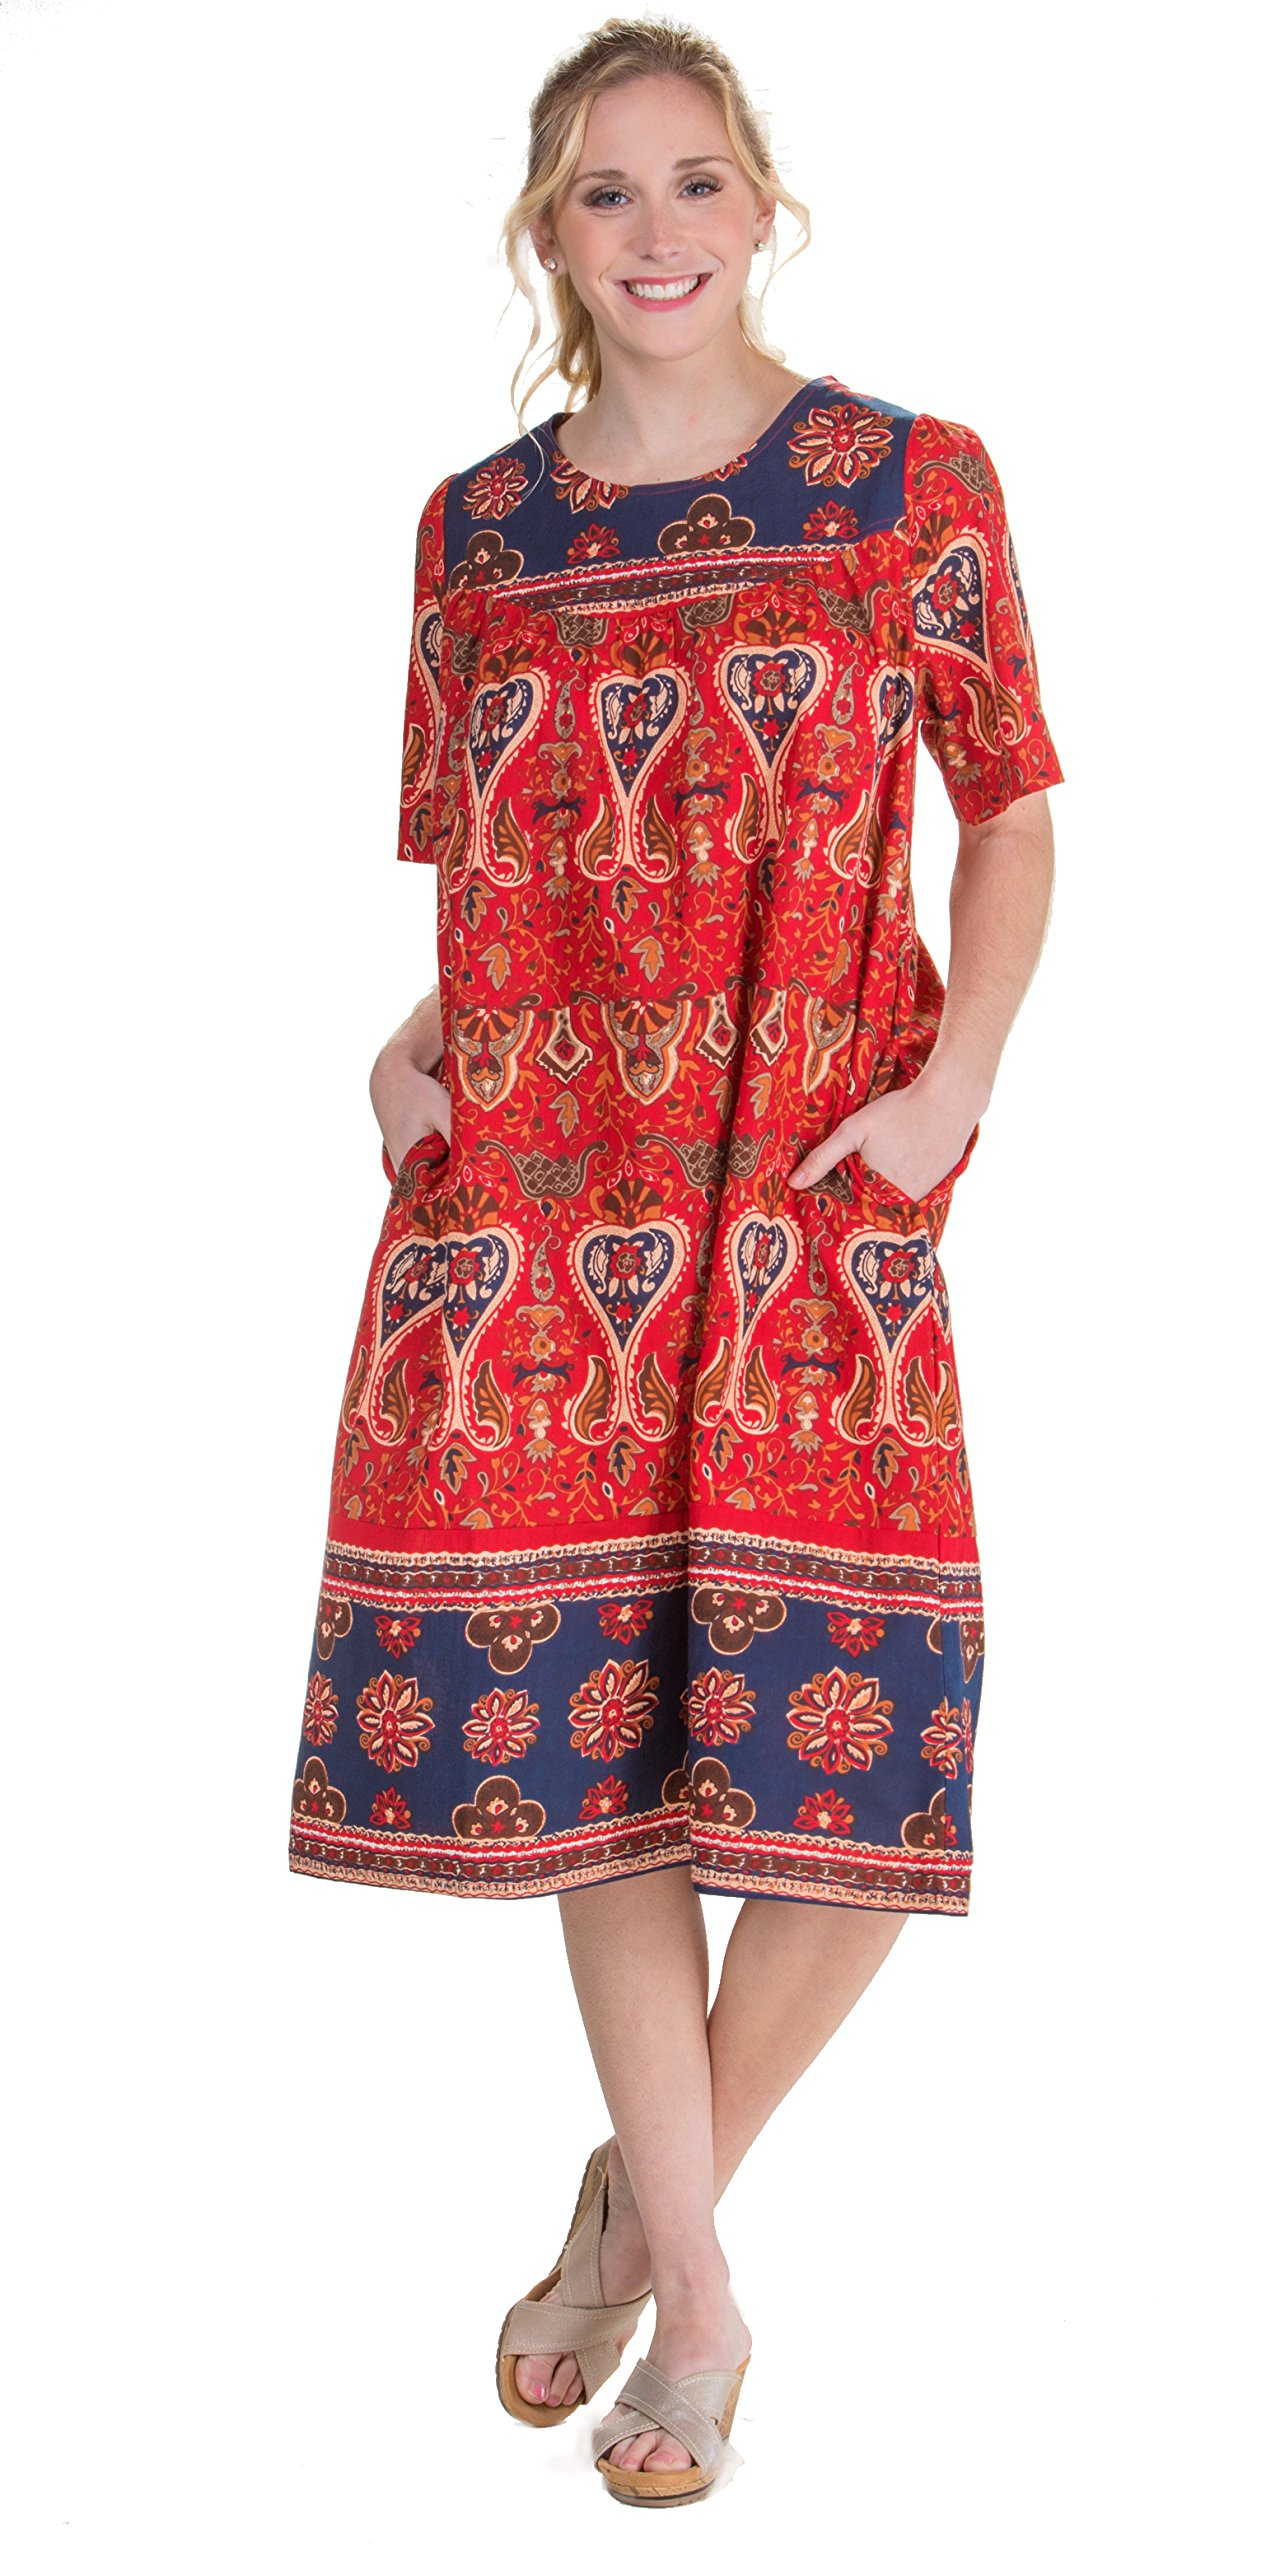 La Cera Short Sleeve Cotton Float Dress - Lounger Caftan In Garden Spice (X-Large (18-20), Red/Brown/Navy)